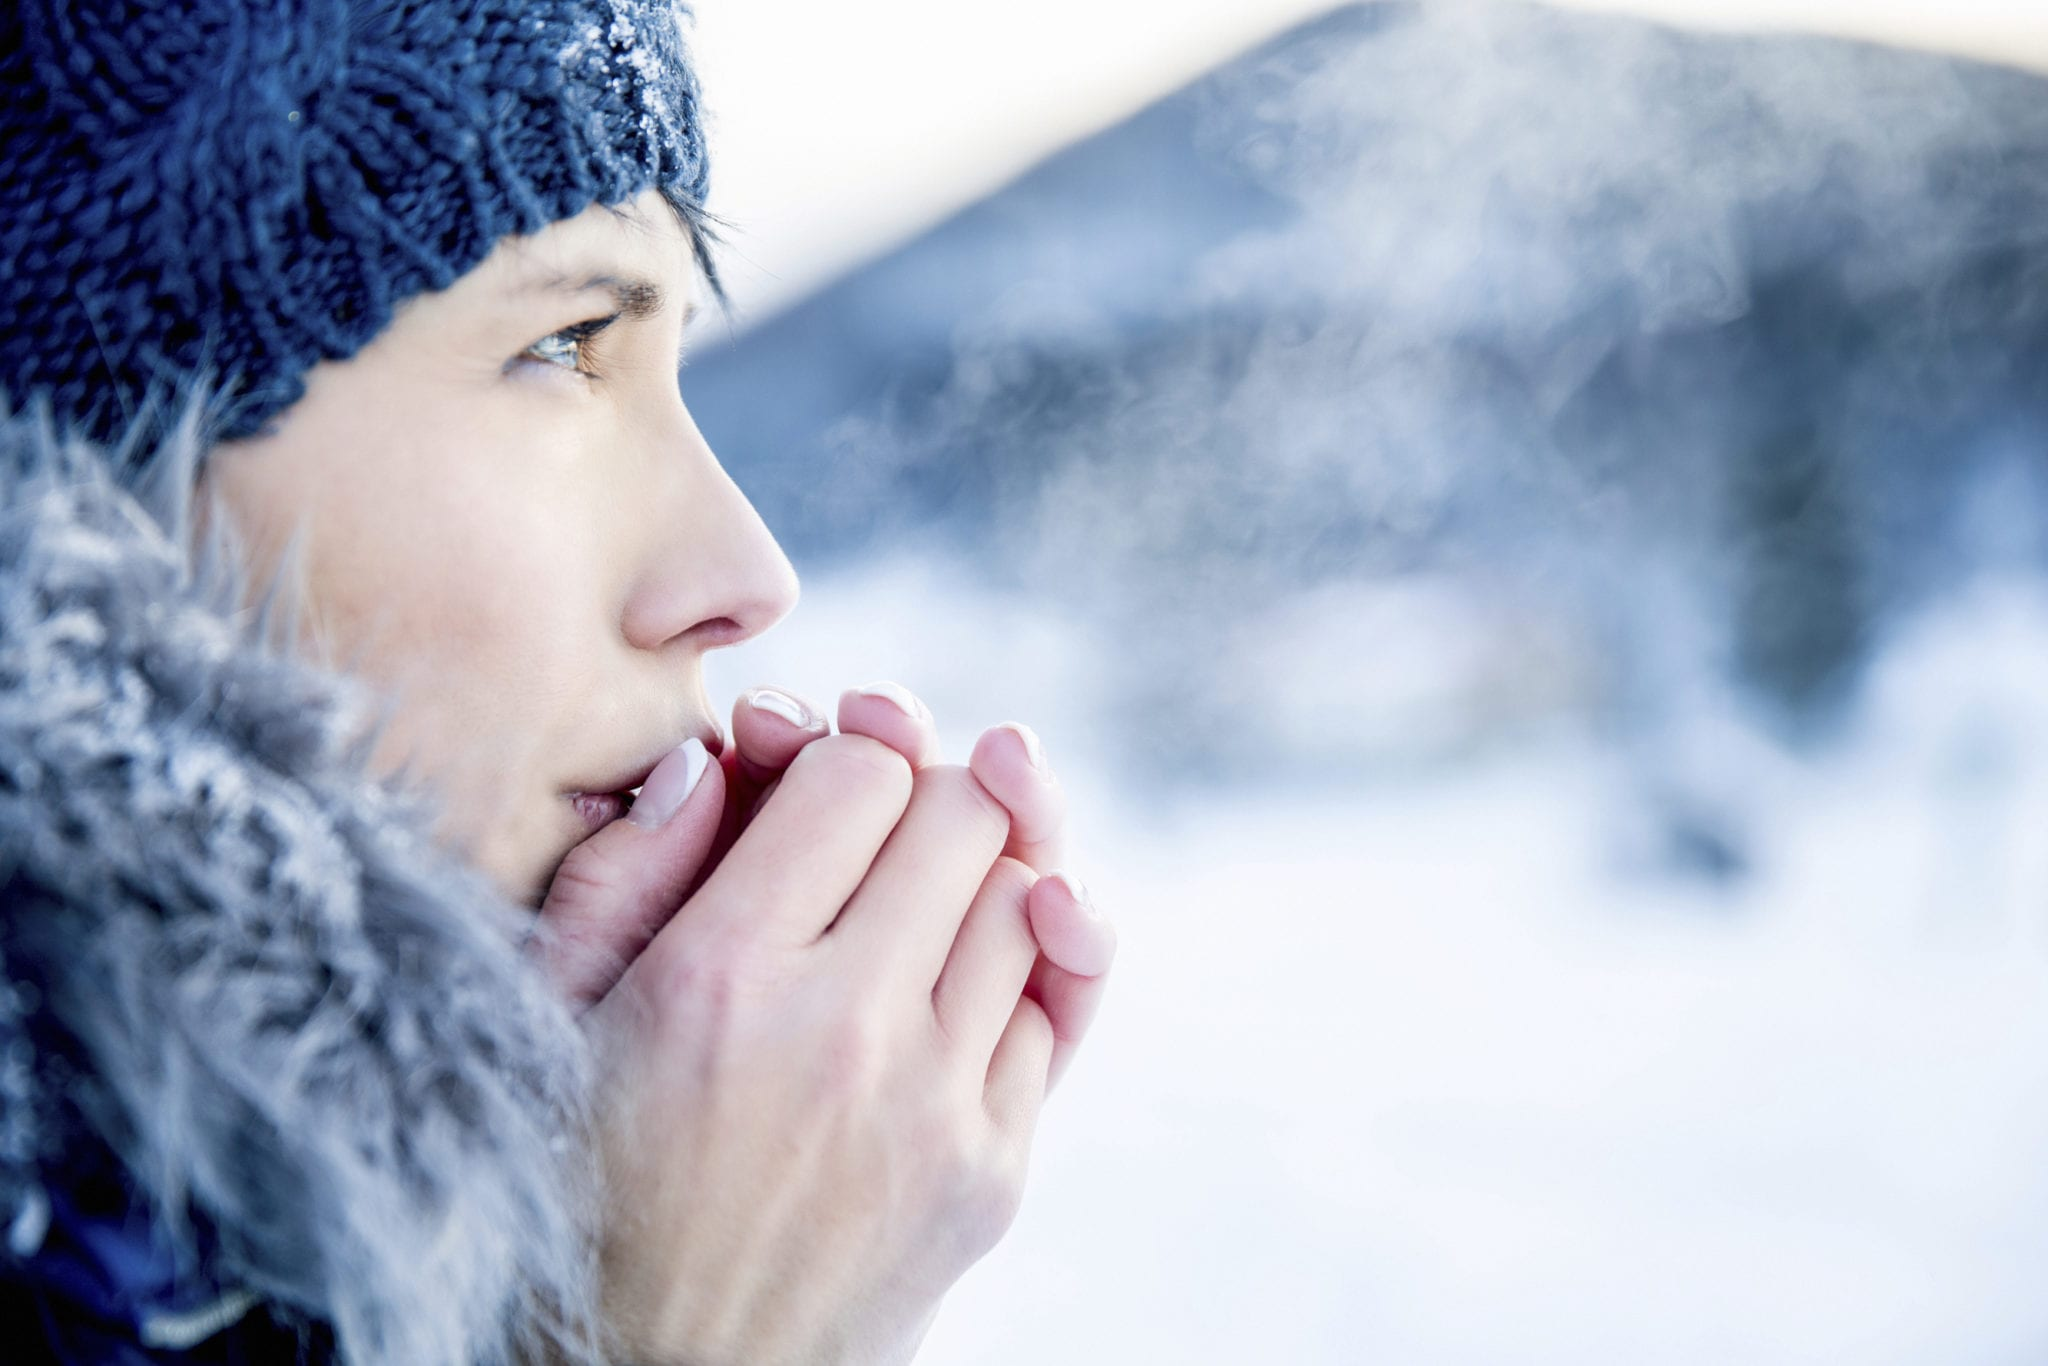 Young woman portrait on a cold winter day. Overcast and cold weather. She is heating her hands with her hot breath.